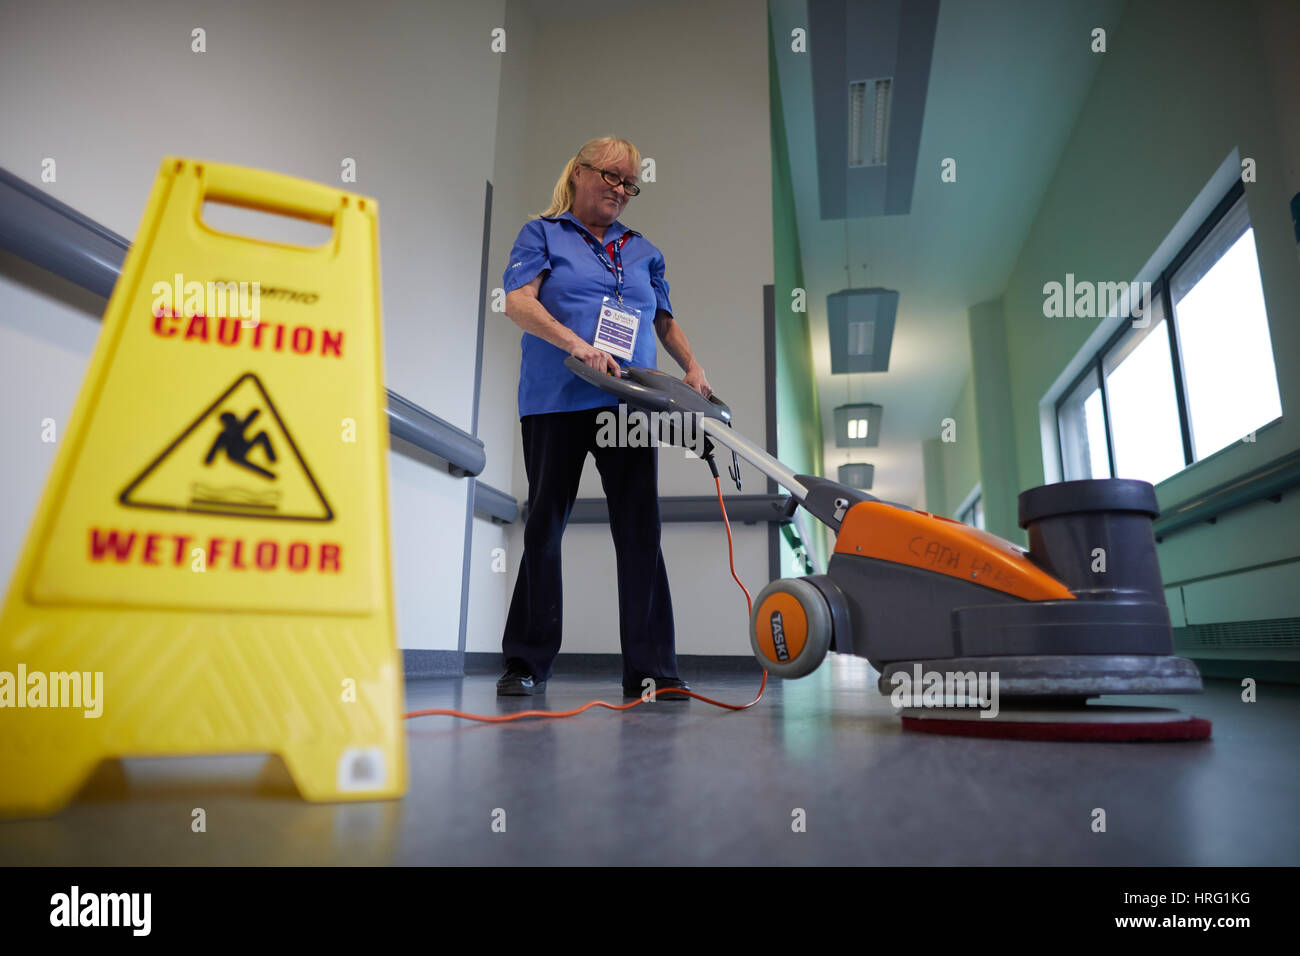 Sodexo cleaner, corridor, interior, working, pushing,Sodexo, Stoke-on-Trent. Stoke University Hospital, Interior, Great - Stock Image